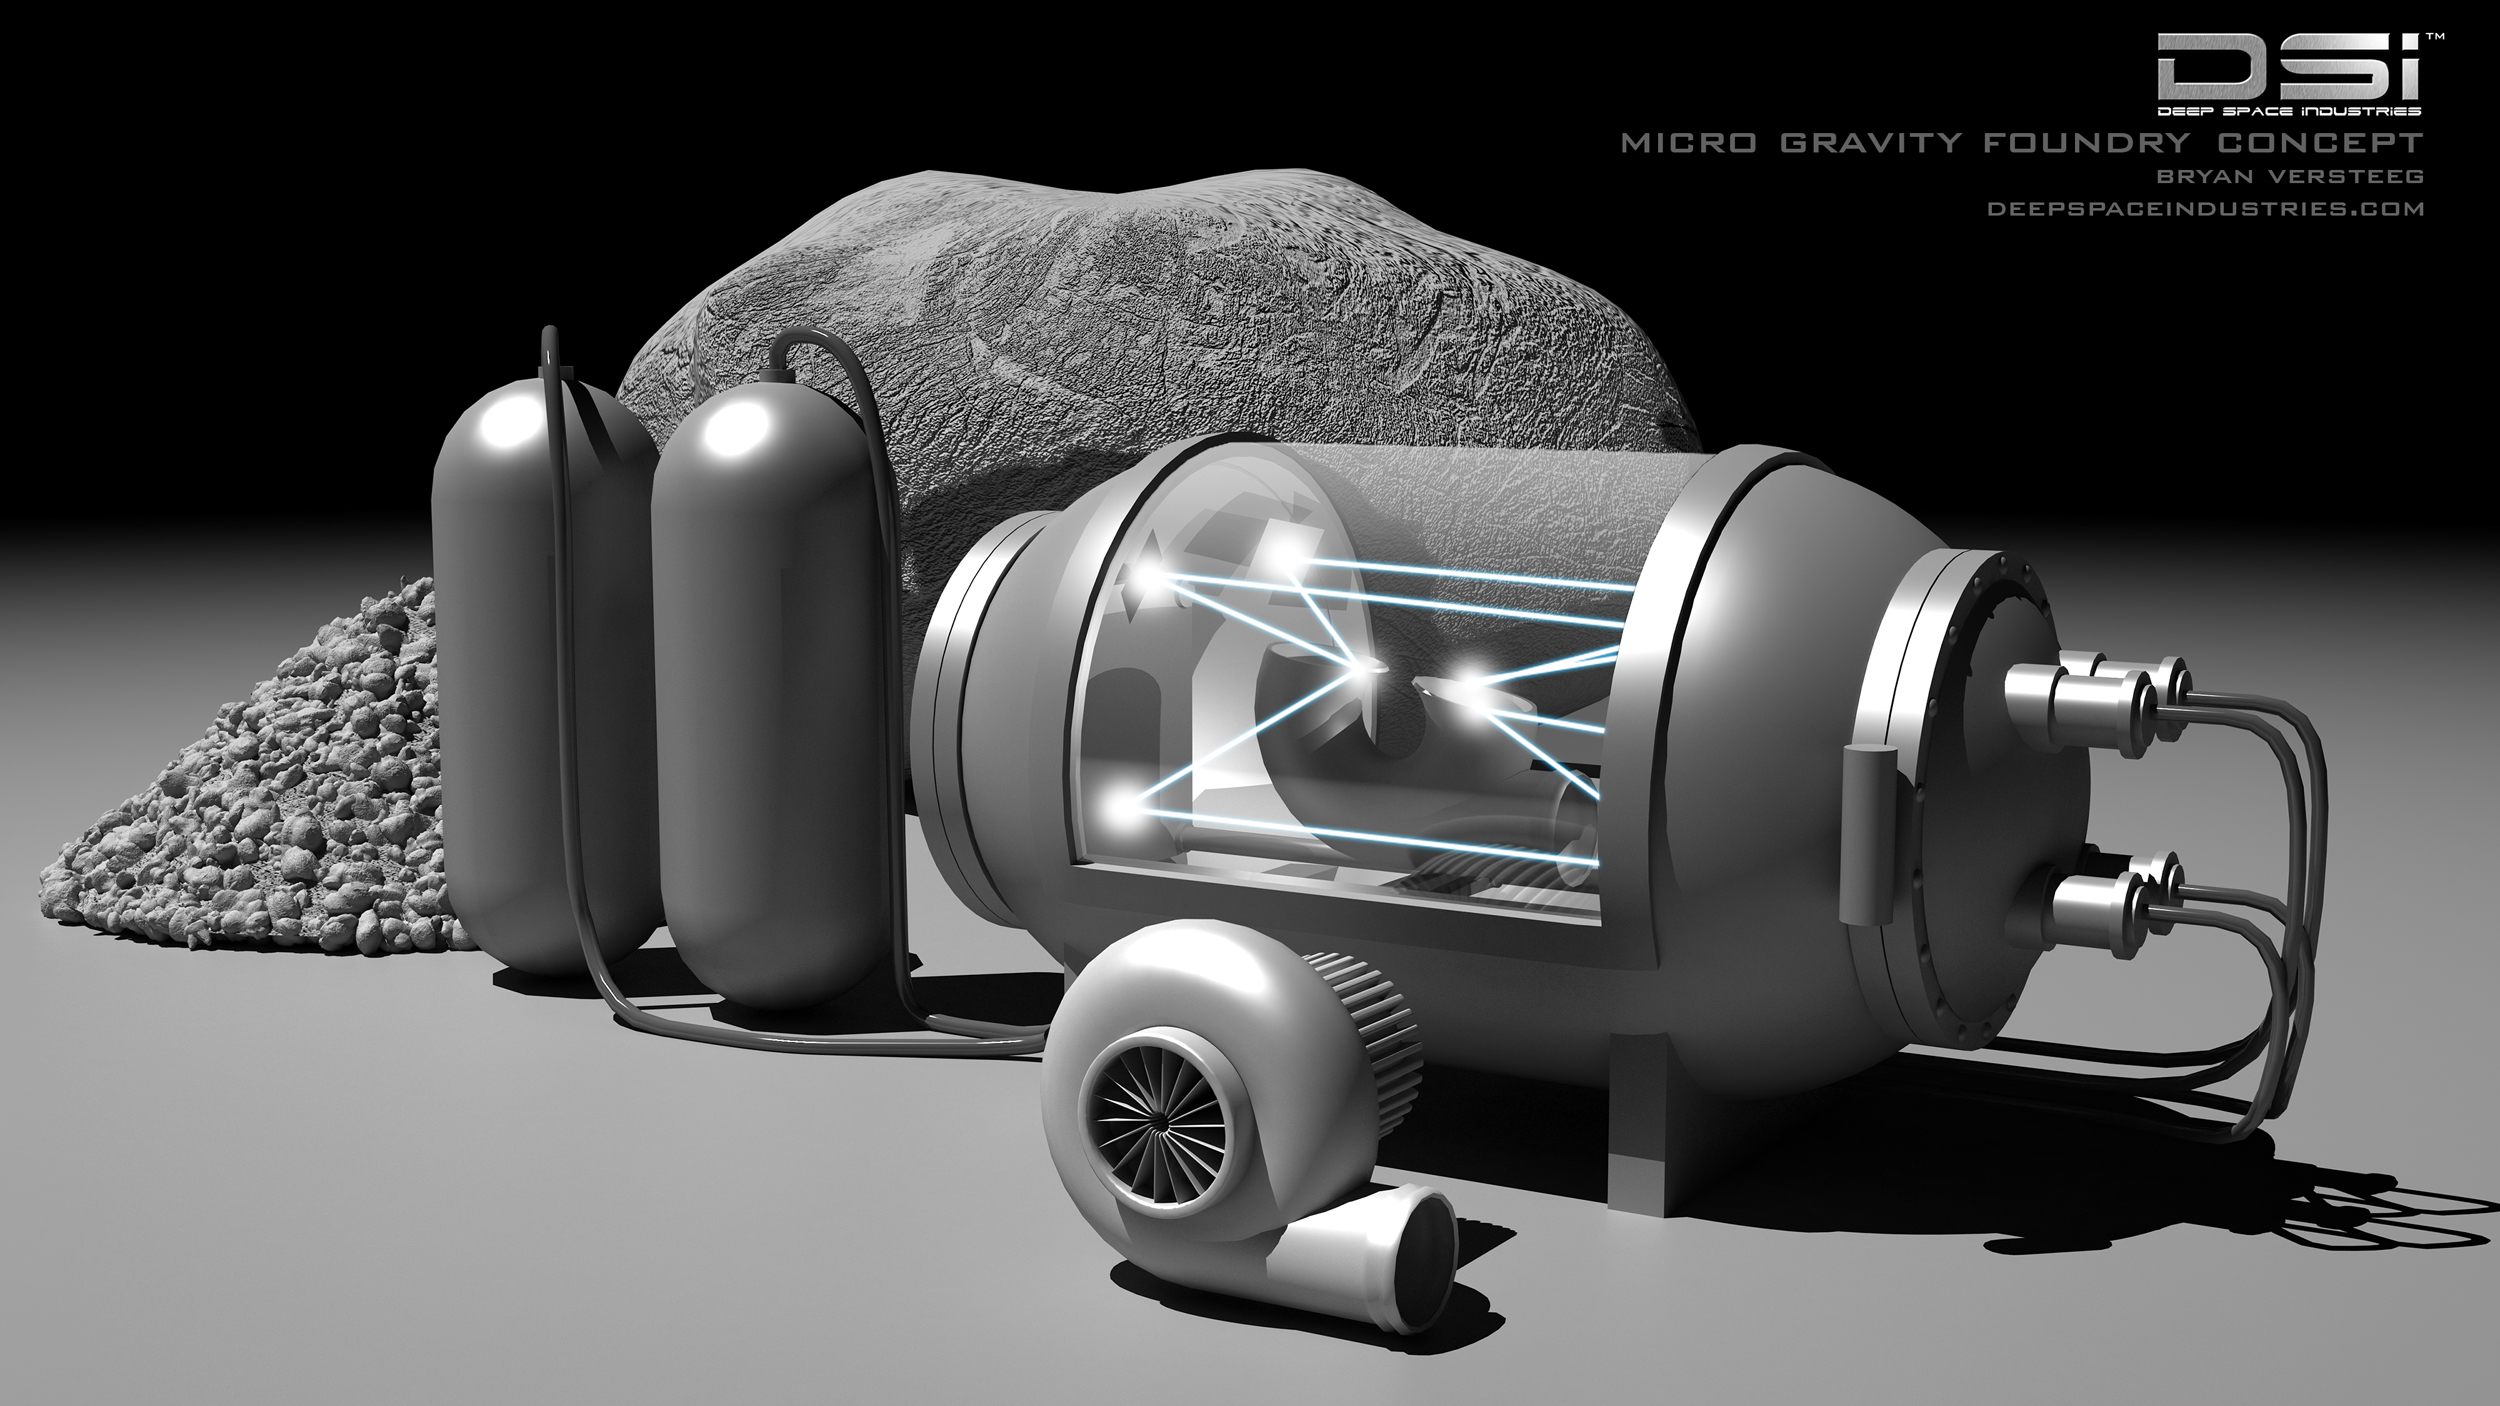 Deep Space Industries Microgravity Foundry